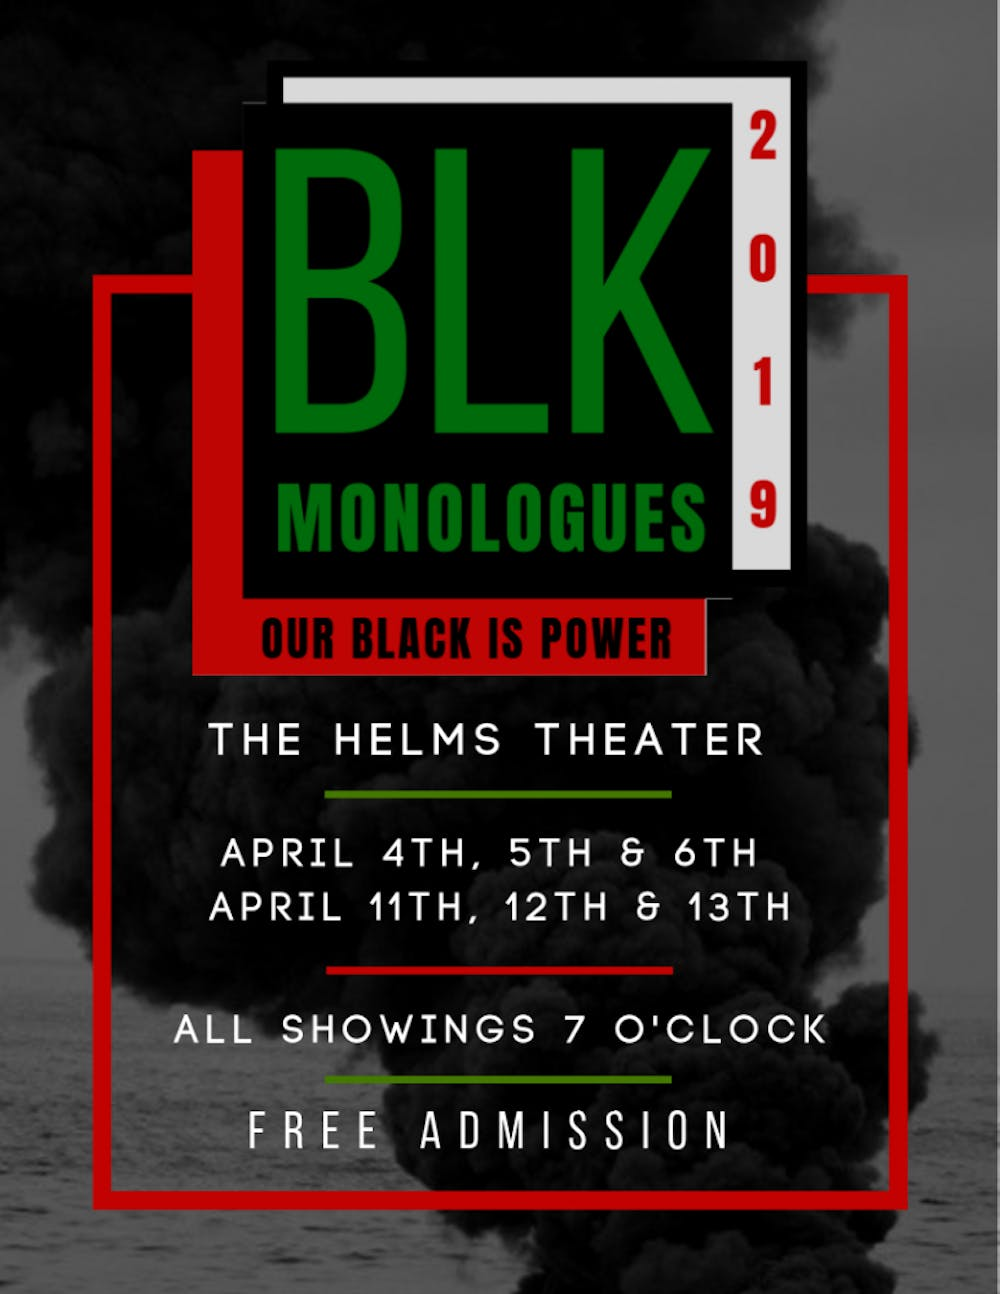 <p>This season's production of Black Monologues centralized around the theme of power and the exploration of black identity at the University and in the broader nation.</p>